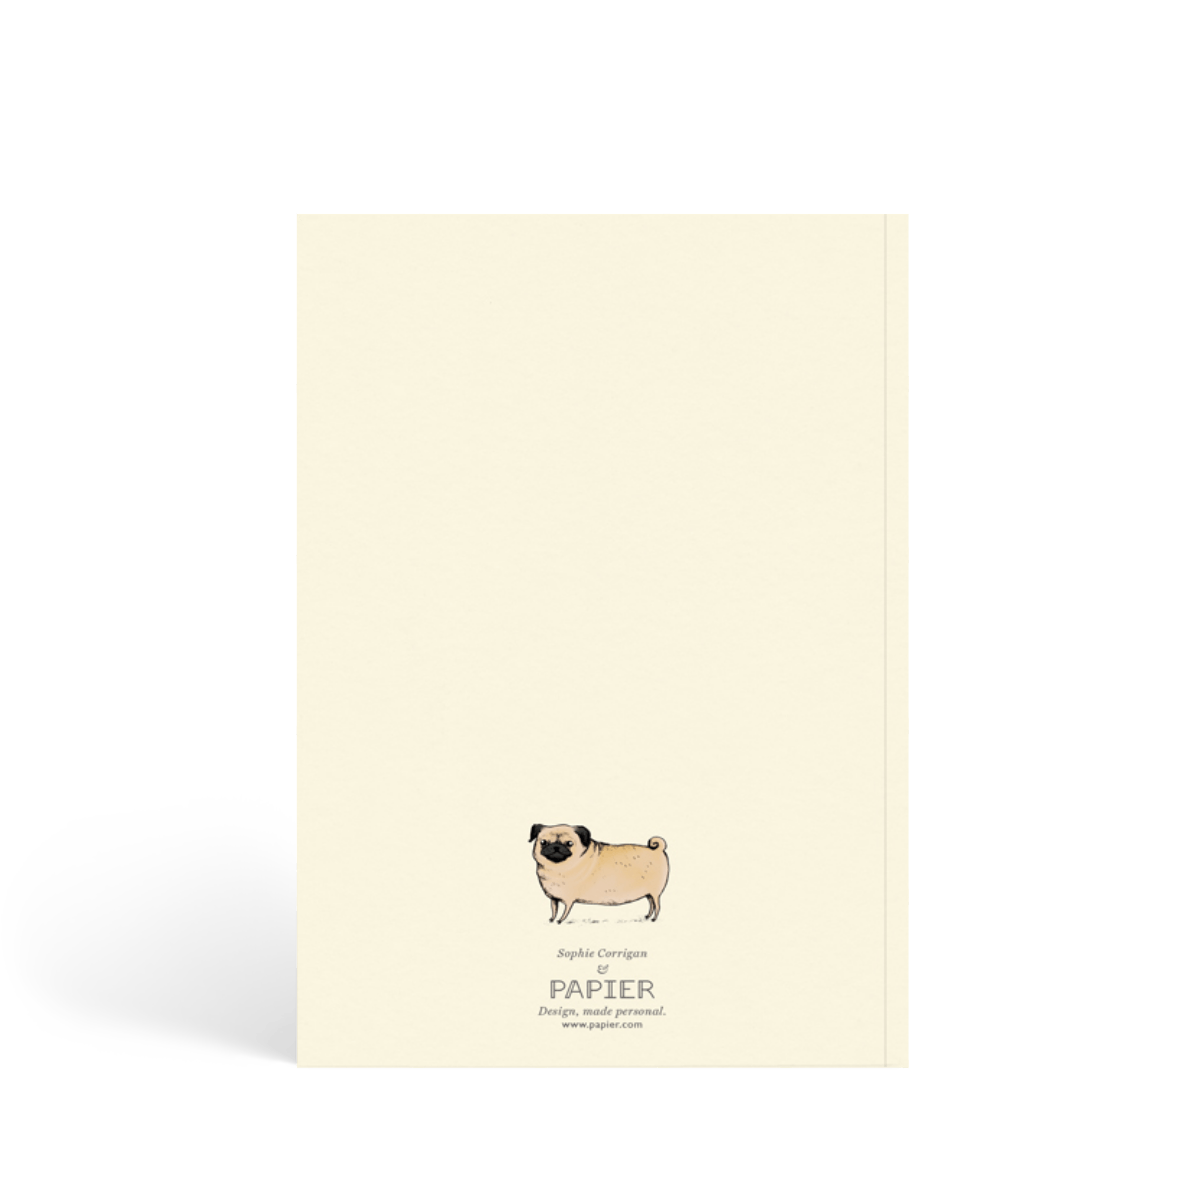 Https%3a%2f%2fwww.papier.com%2fproduct image%2f10073%2f5%2fanatomy of a pug 2562 arriere 1470650117.png?ixlib=rb 1.1